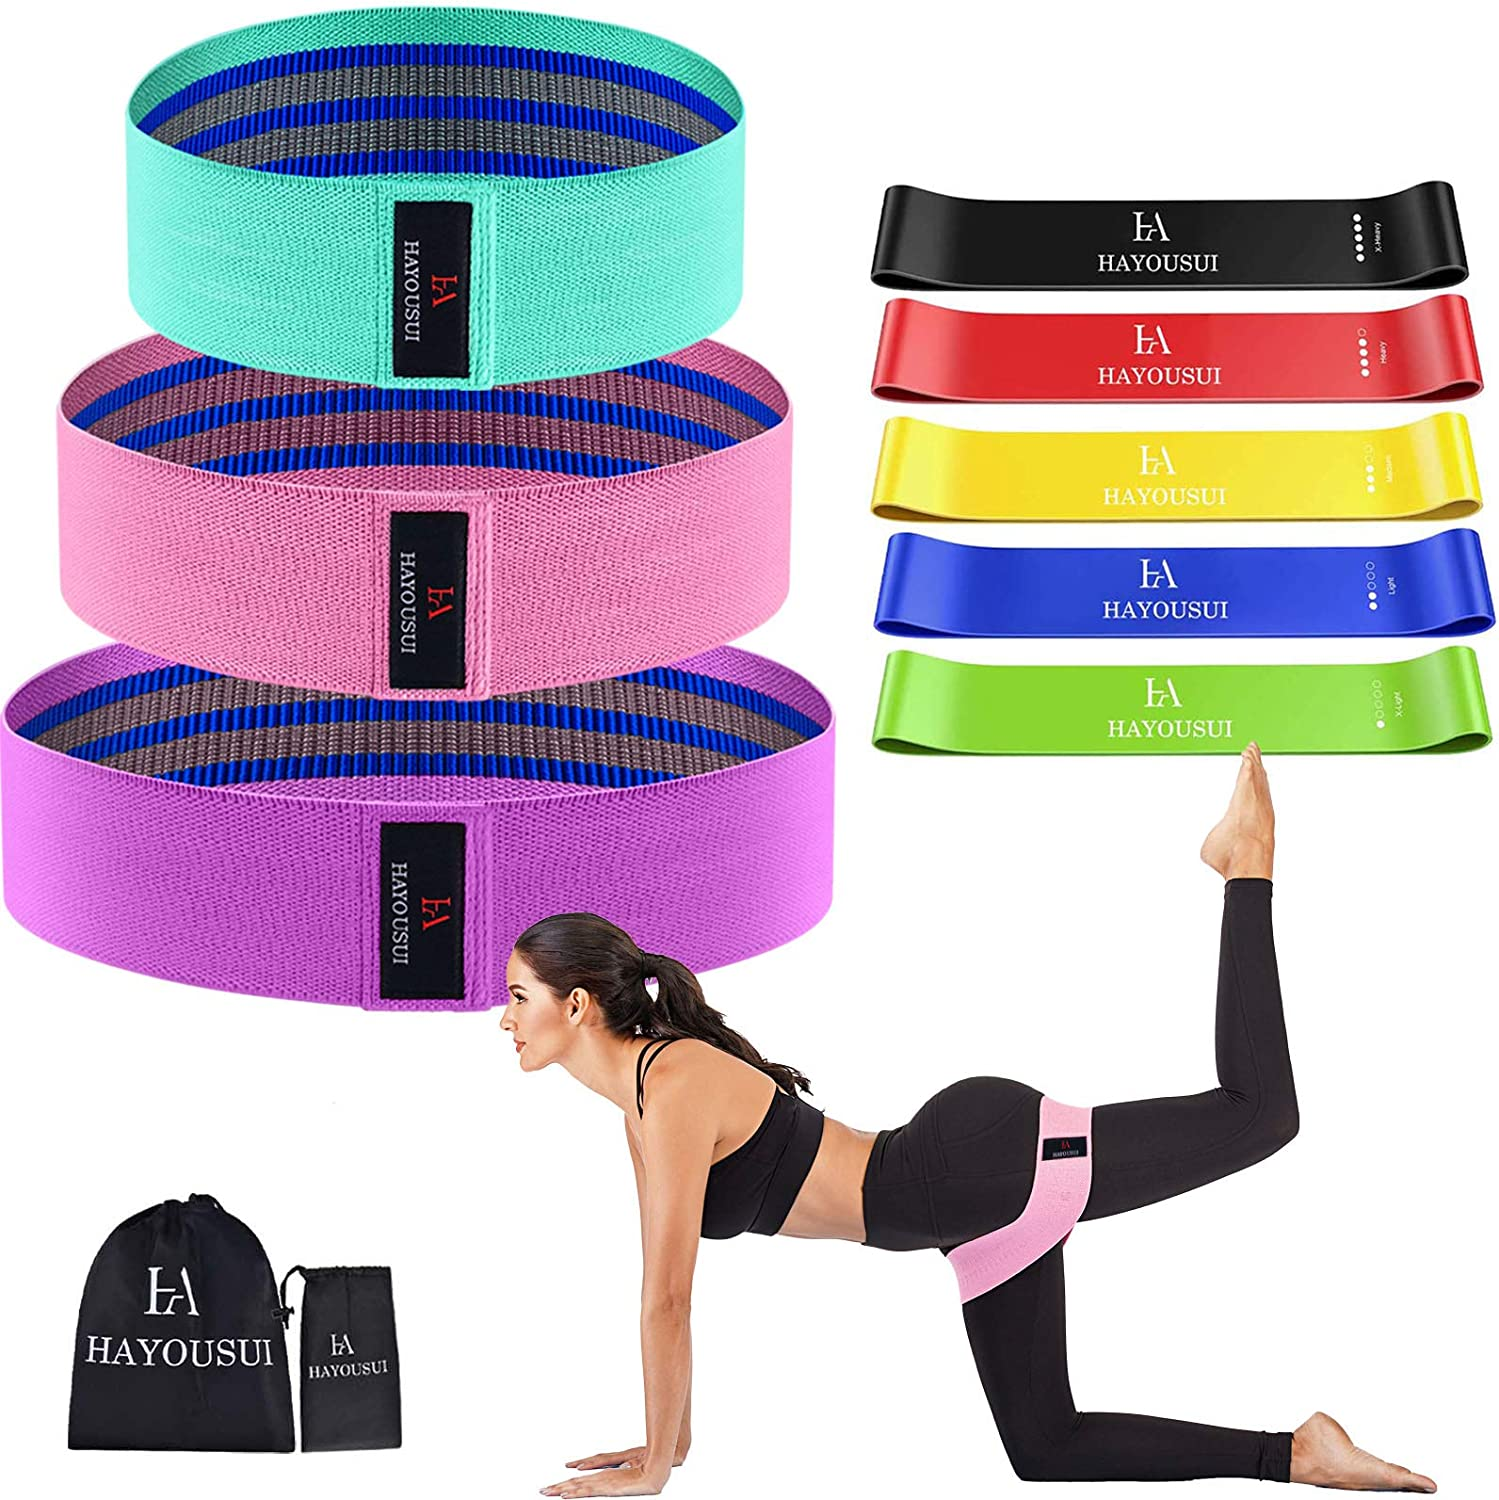 Cloth Fabric Resistance Hip Booty Bands Loop Exercise Workout Fitness Gym Band